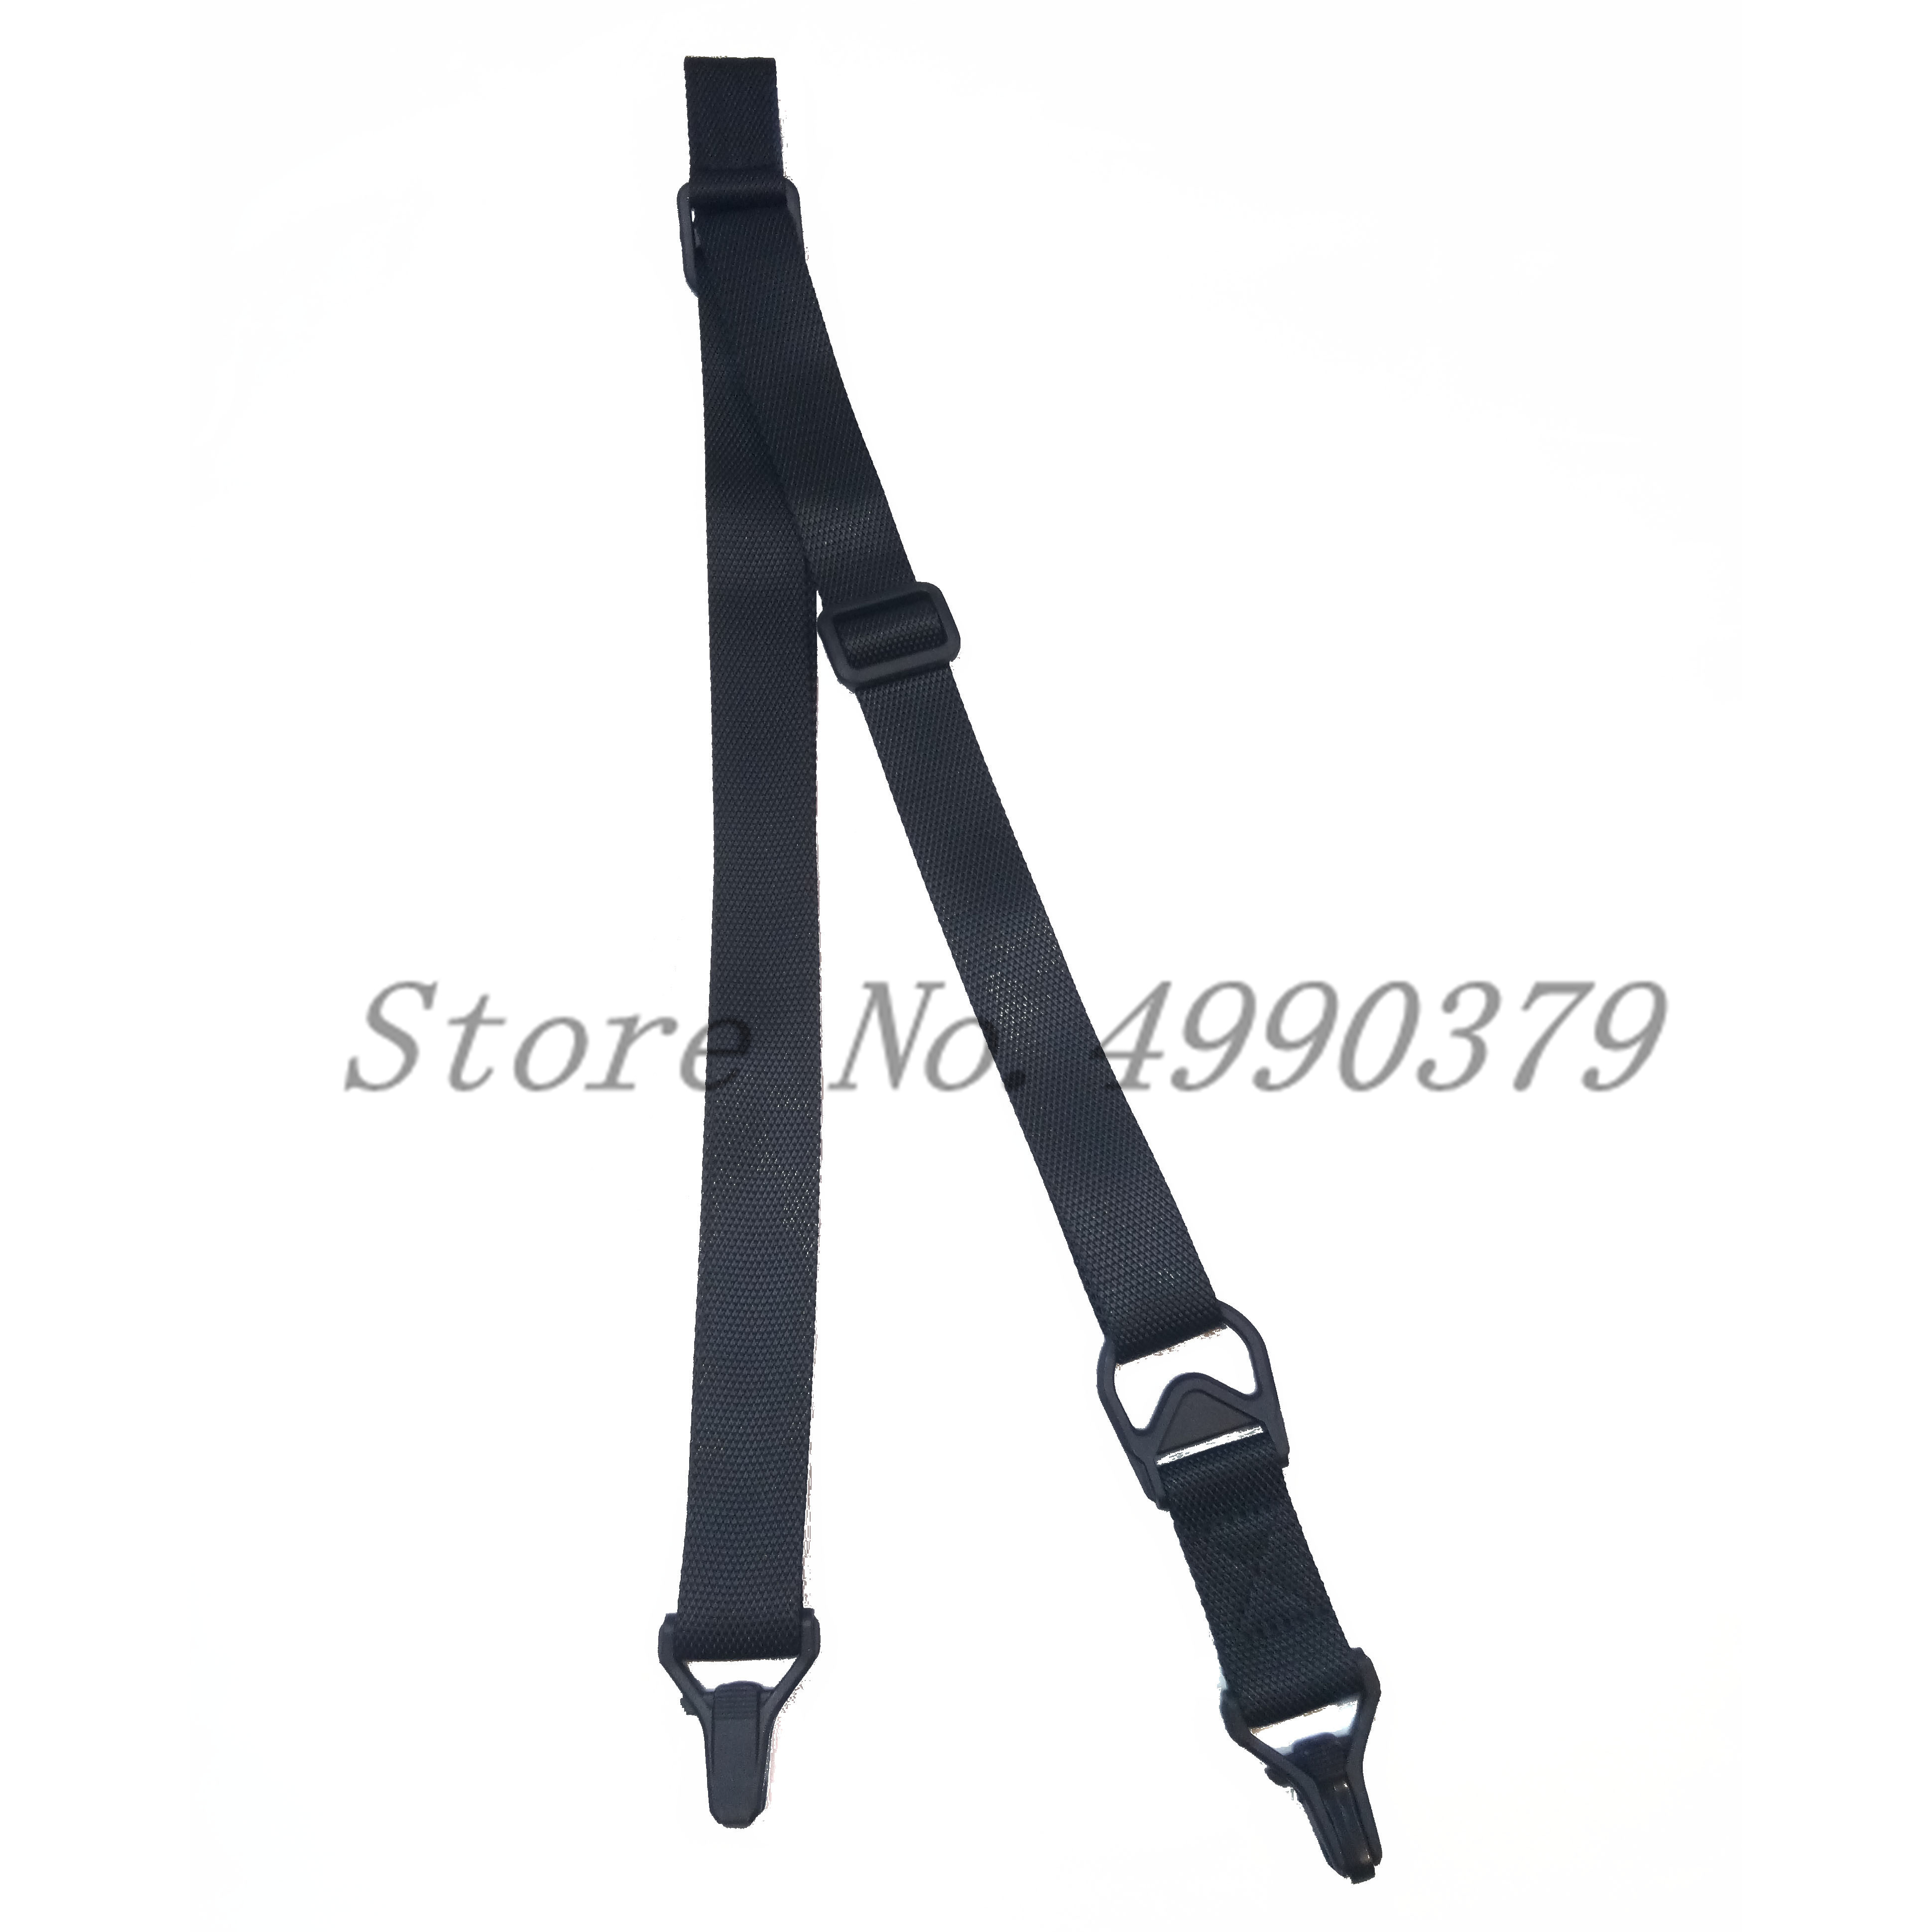 Image 2 - HANWILD  MS3 Tactical Sling Multi Mission Rifles Carry Sling Adjustable Length Shoulder Straps Wholesale-in Hunting Gun Accessories from Sports & Entertainment